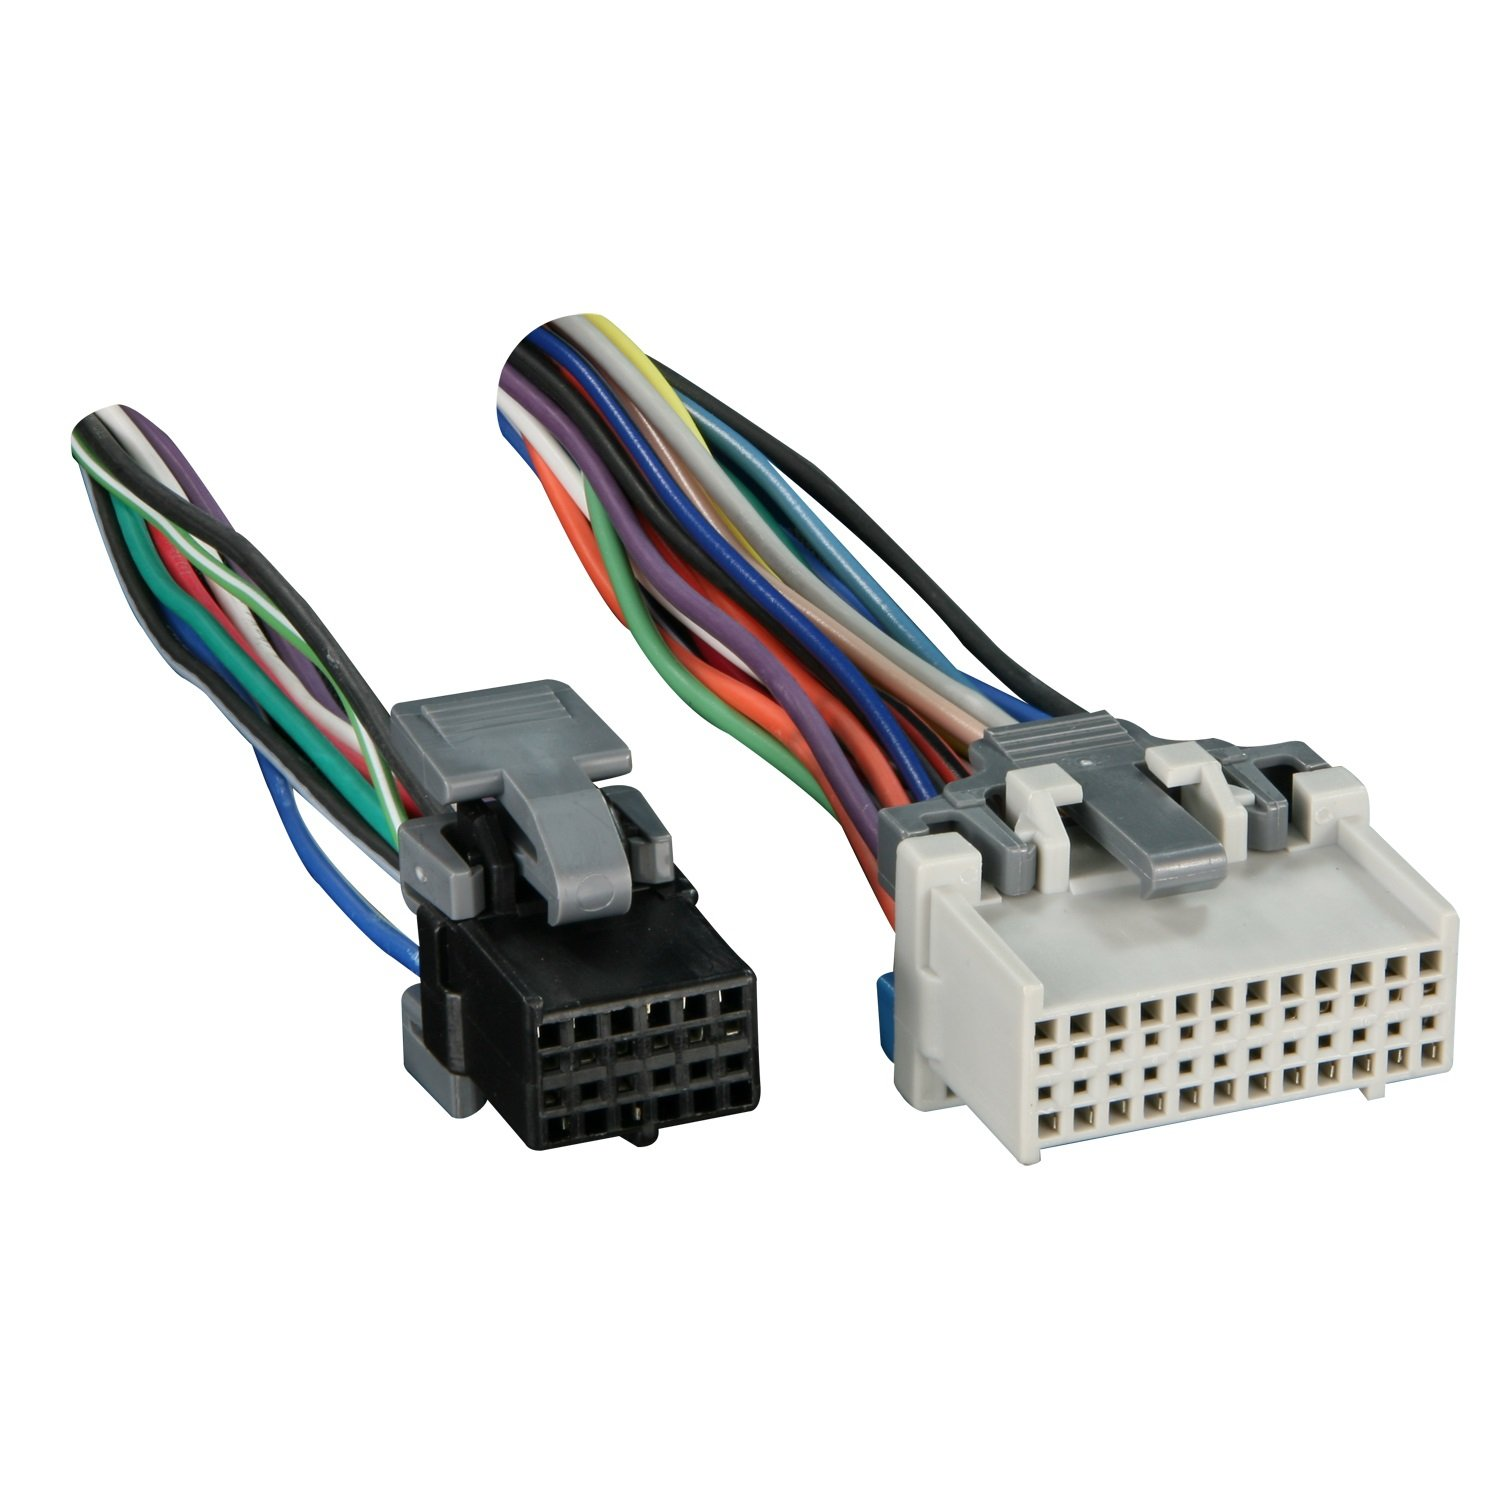 711log4bdML._SL1500_ amazon com metra turbowires 71 2003 1 wiring harness car electronics 03 impala radio wiring harness at webbmarketing.co